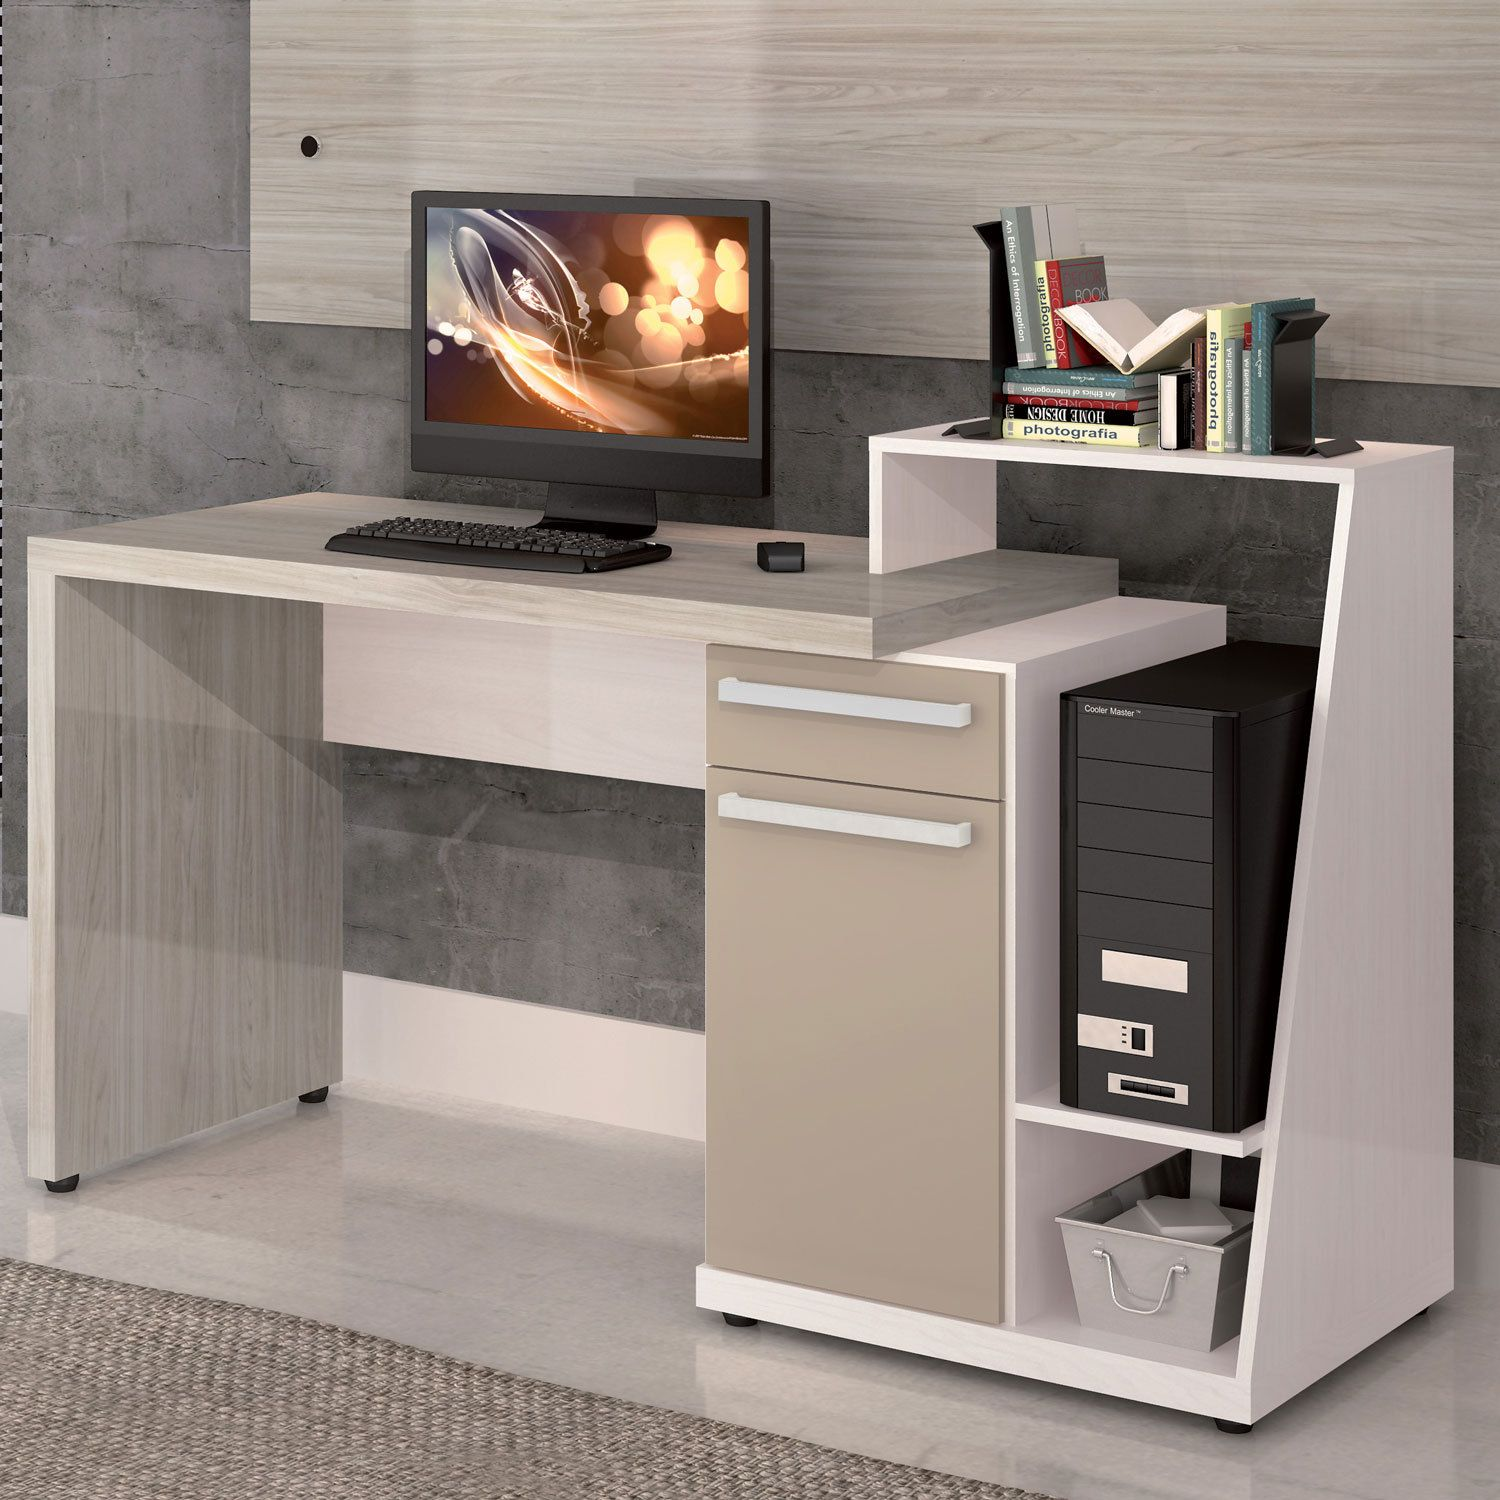 Diy computer desk ideas that make more spirit work diy - Computer and study table designs for home ...